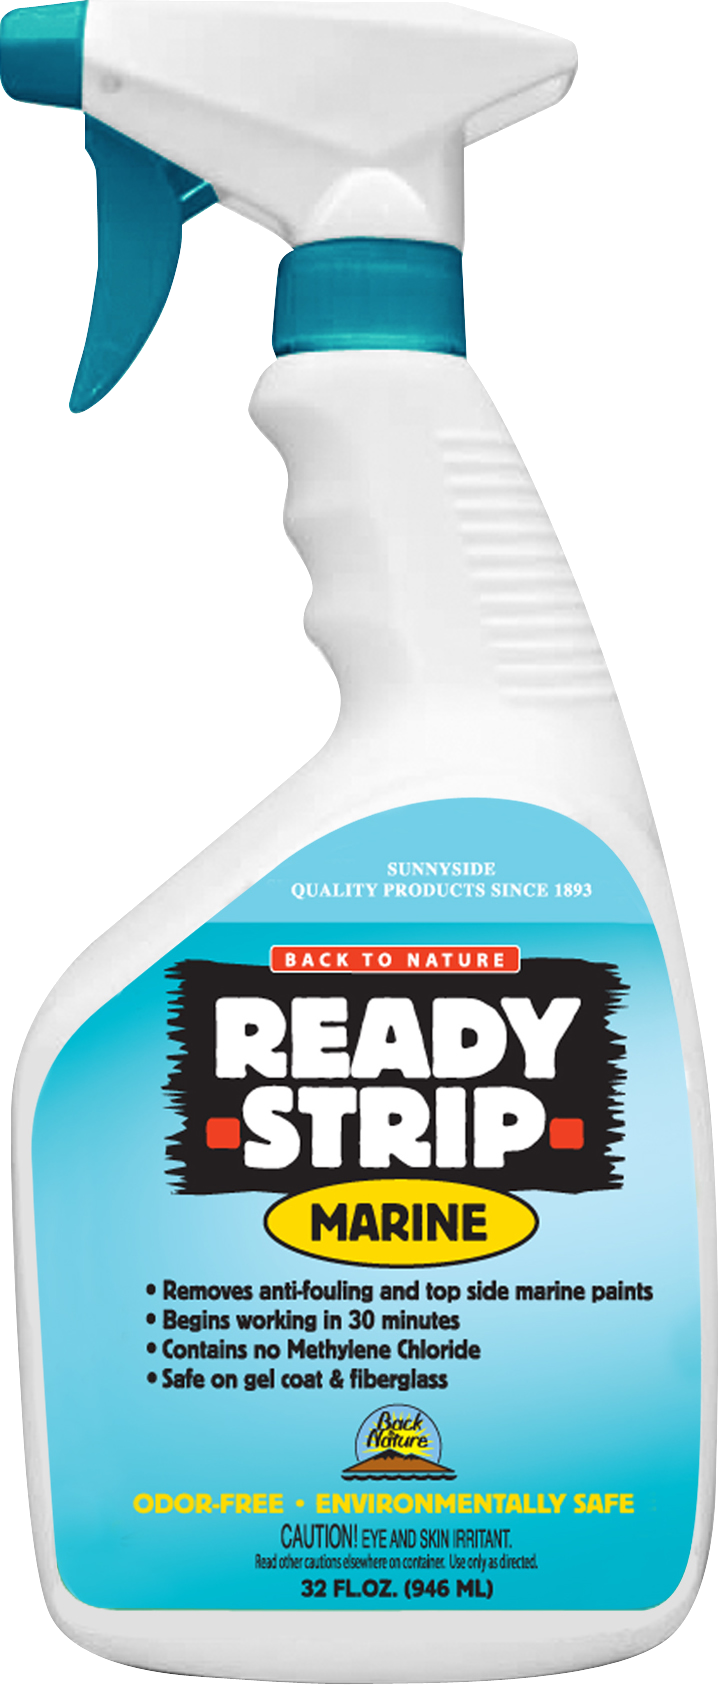 BACK TO NATURE READY-STRIP MARINE PAINT REMOVER SPRAY Product Image